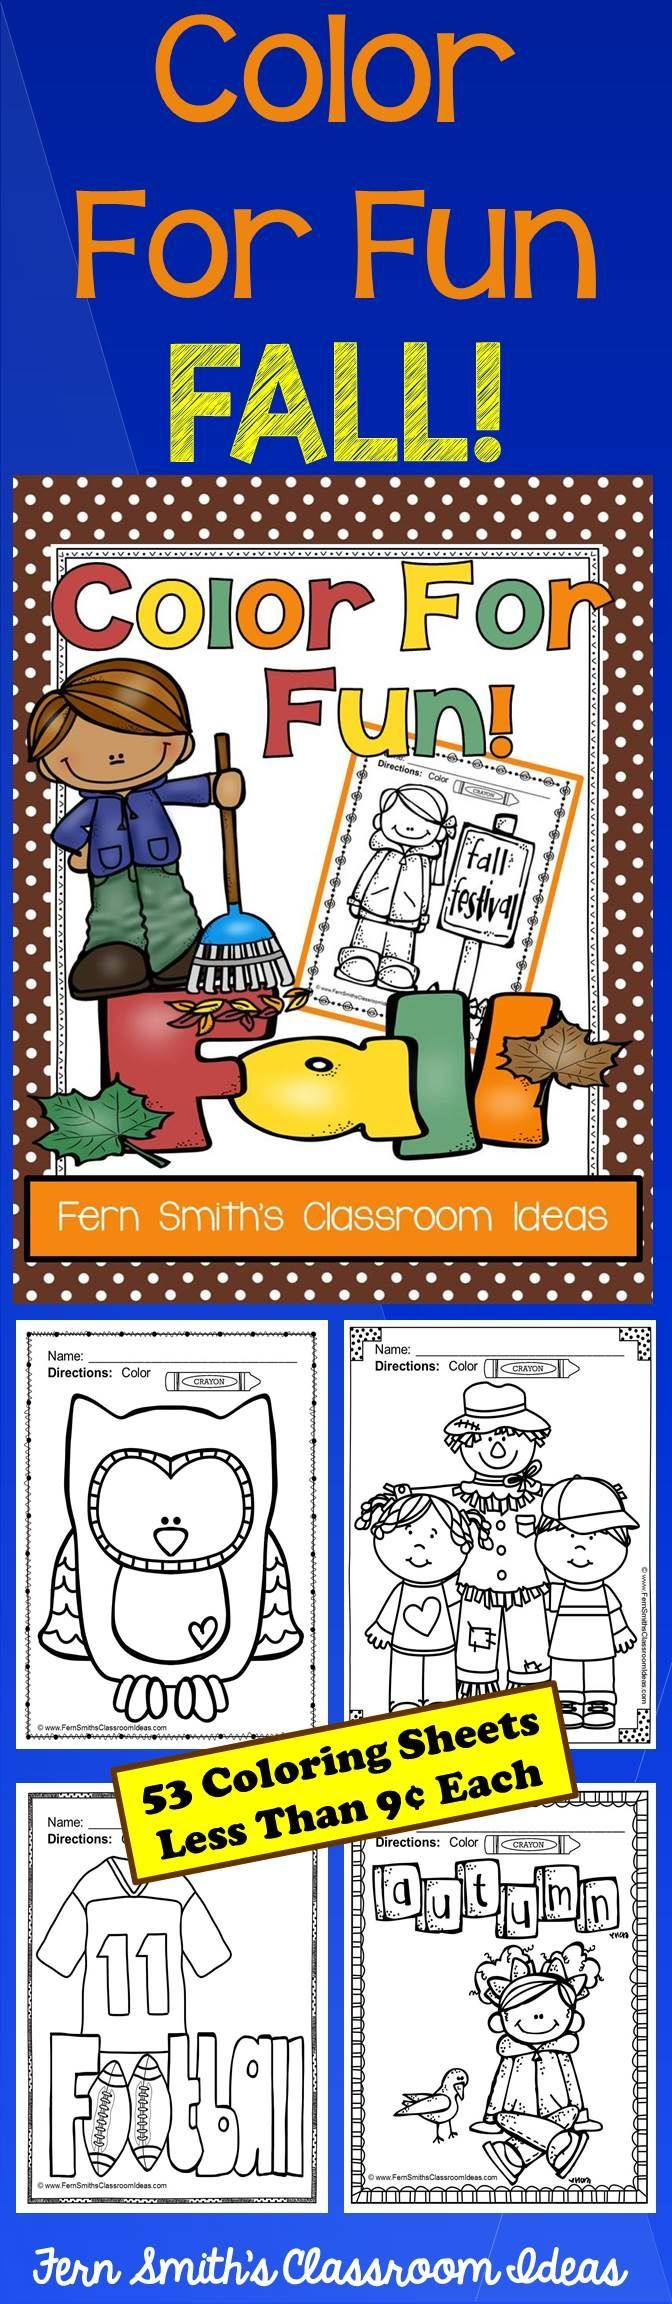 Fall Fun! Color For Fun Printable Coloring Pages {53 coloring pages equals less than 9 cents a page.} #Free Autumn Coloring Page in the Preview Download #TPT $Paid